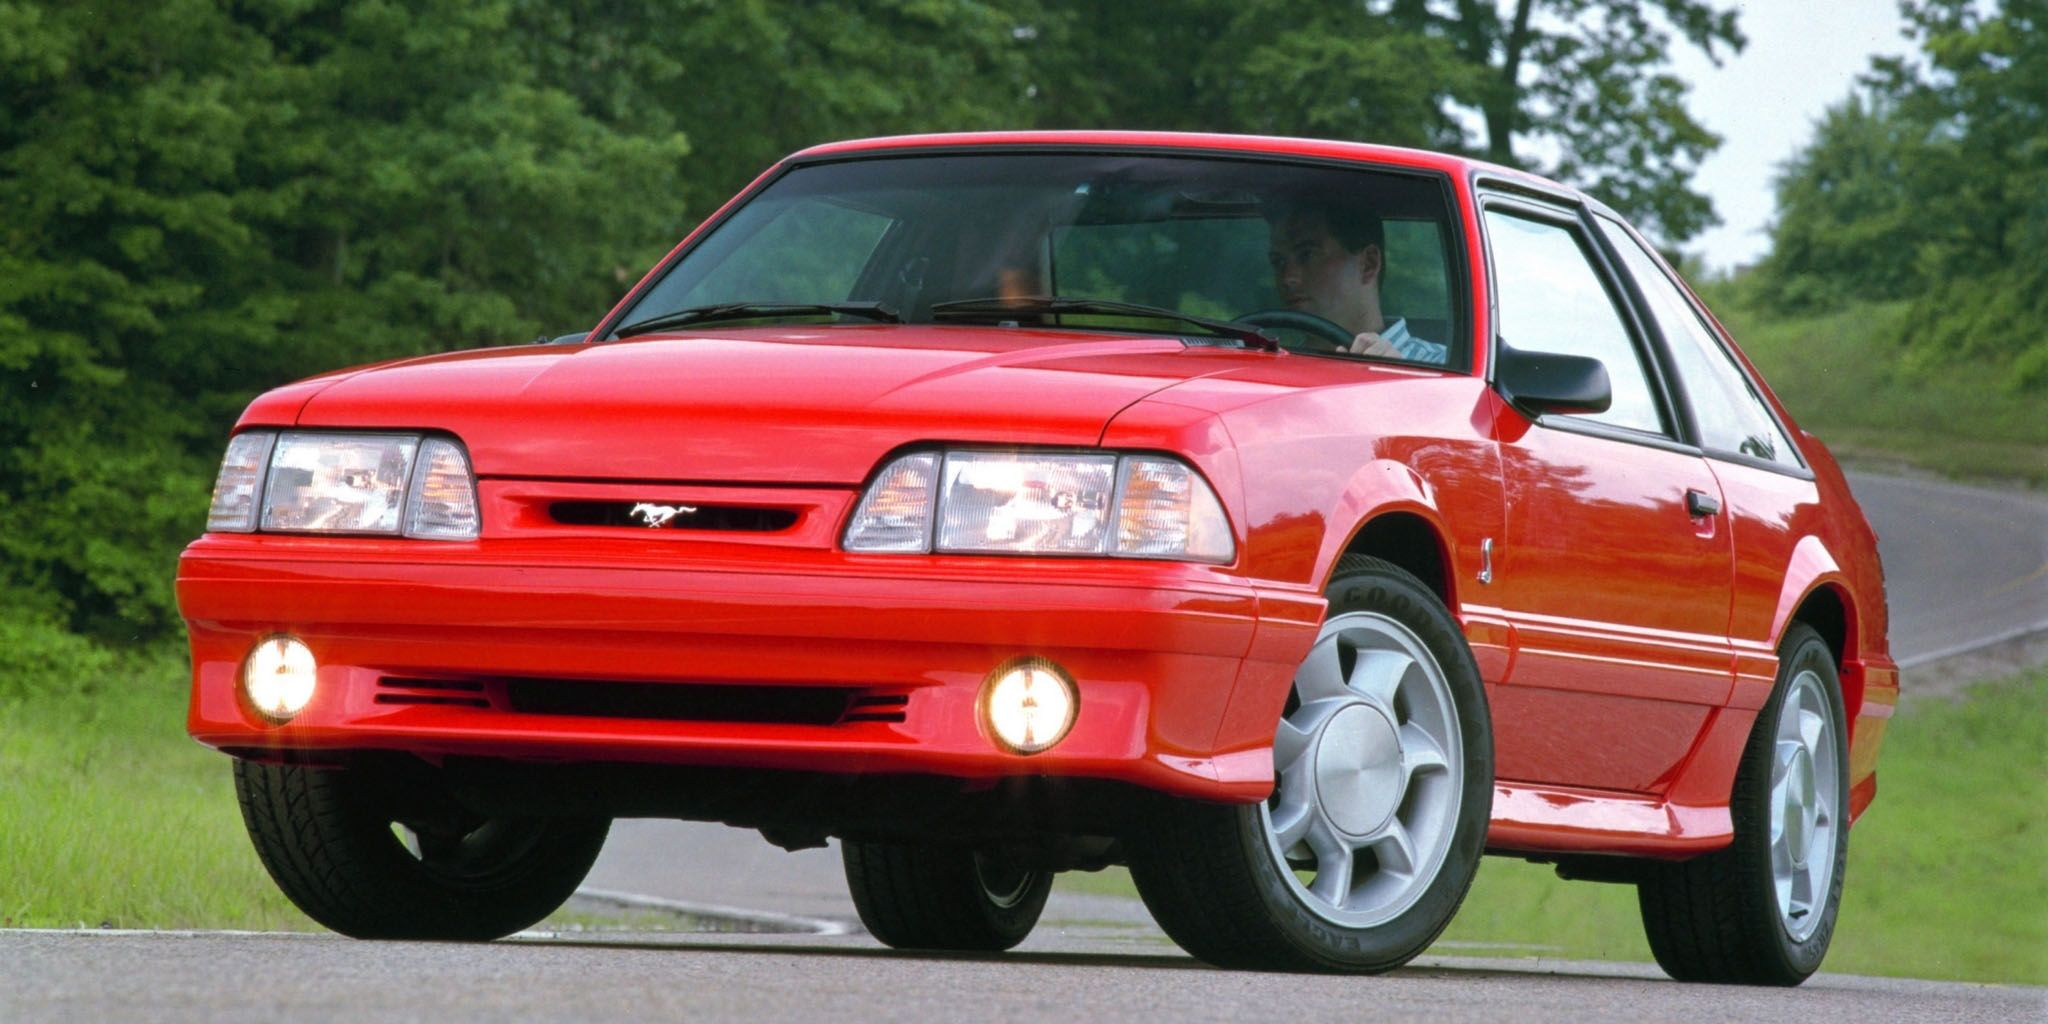 The Greatest Cars of the 1990s